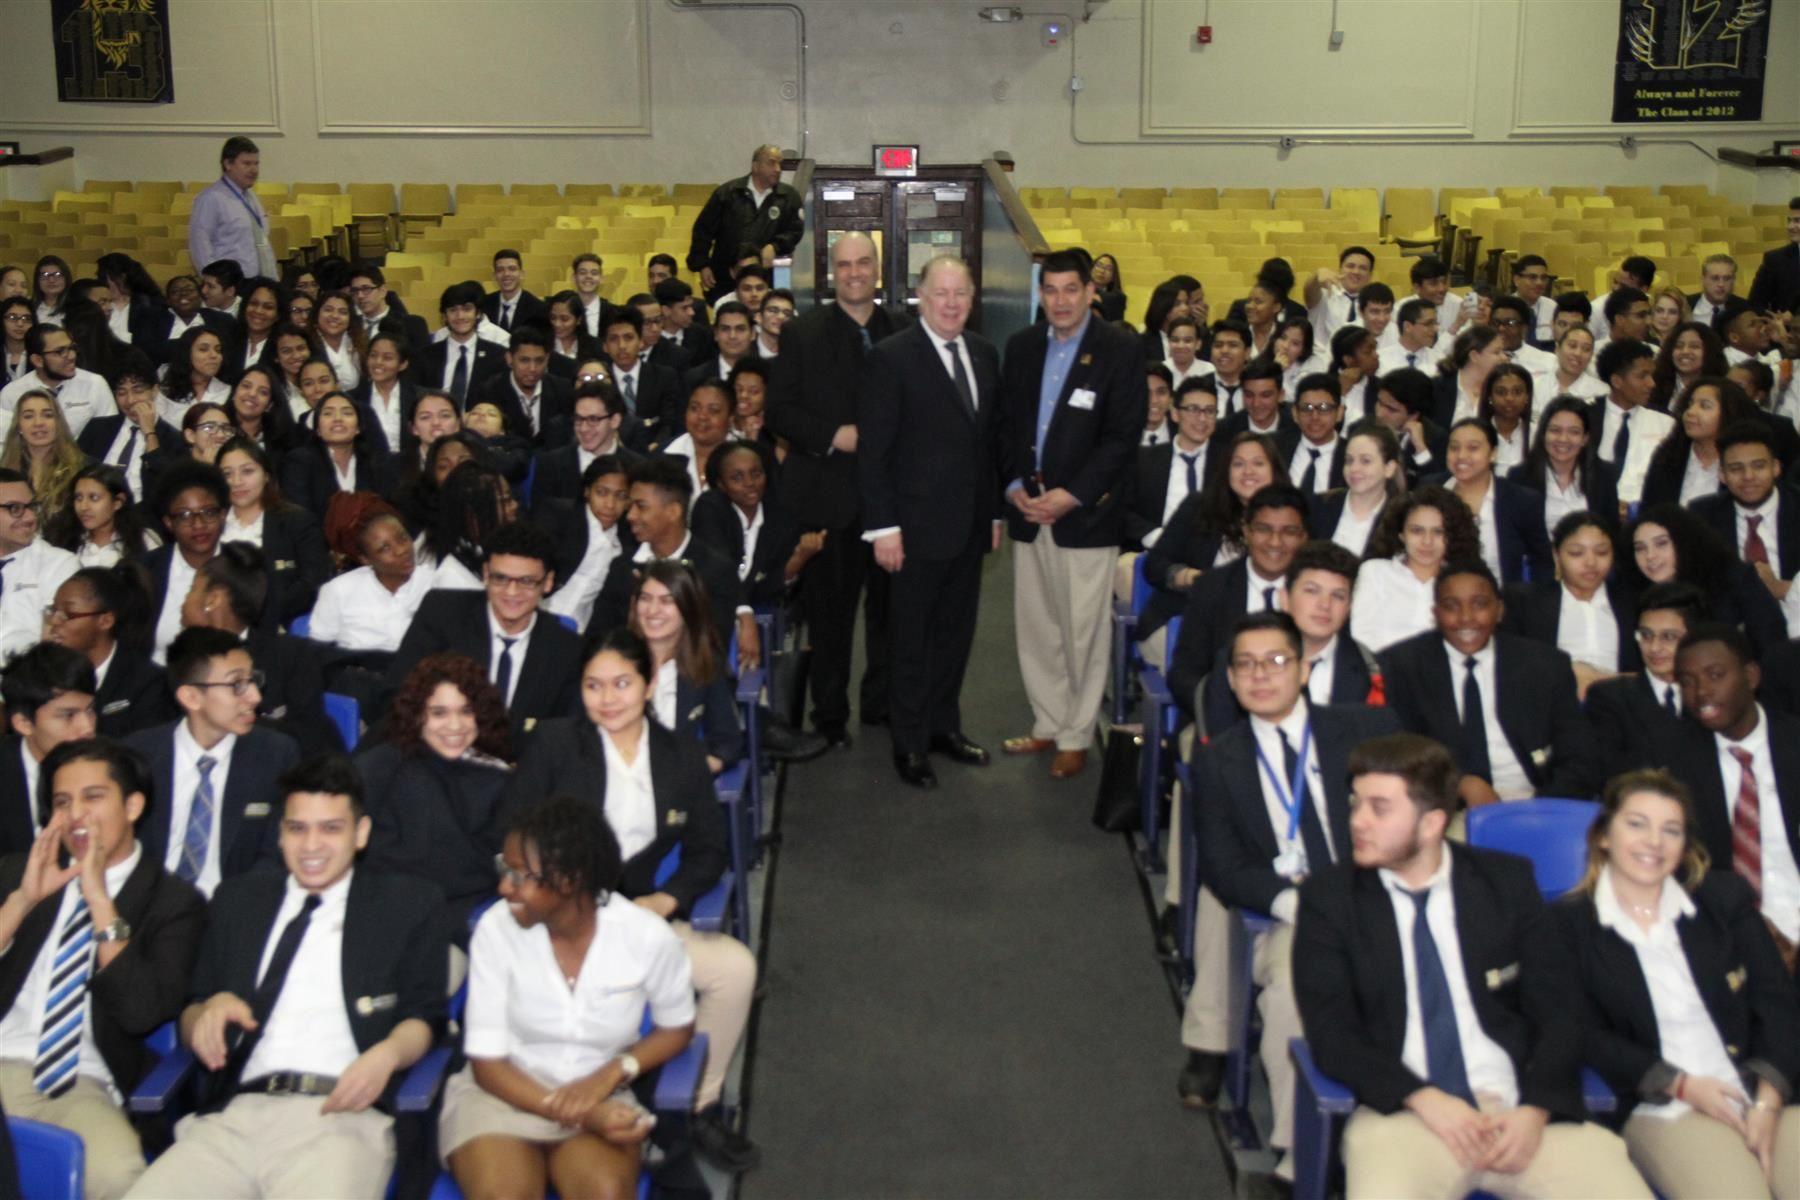 Mayor J. Christian Bollwage Visits AP Government & Politics Students